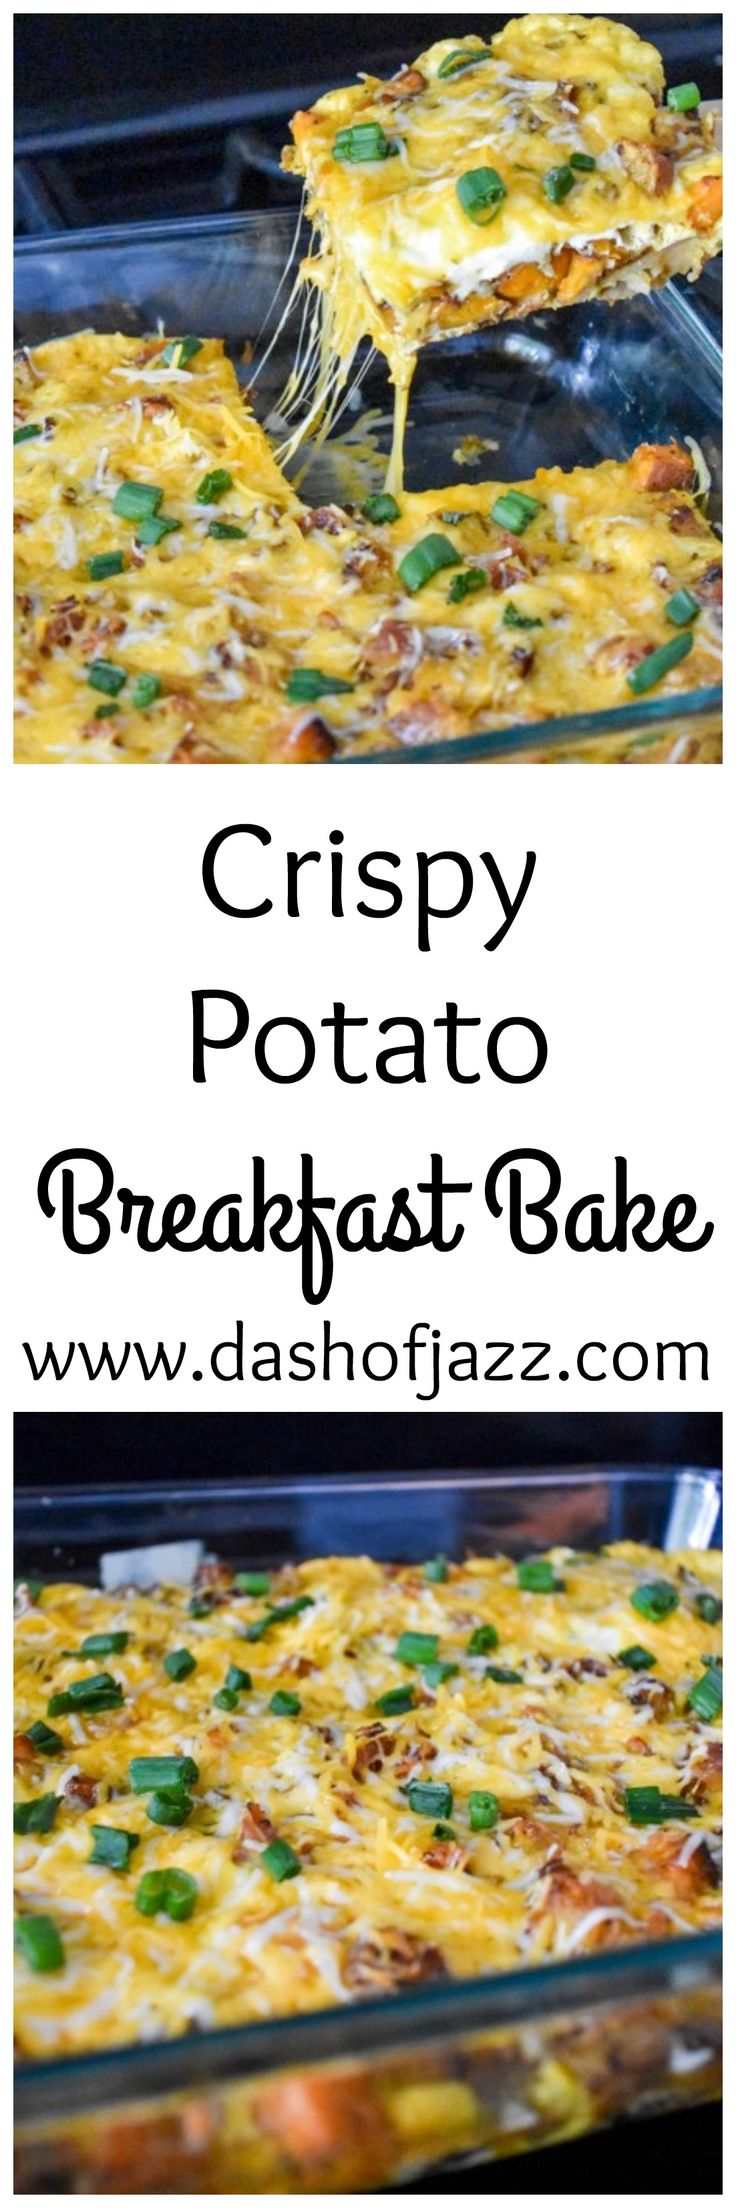 A cheesy, one-pan breakfast or brunch dish with bacon, eggs, and crispy potatoes! | Dash of Jazz